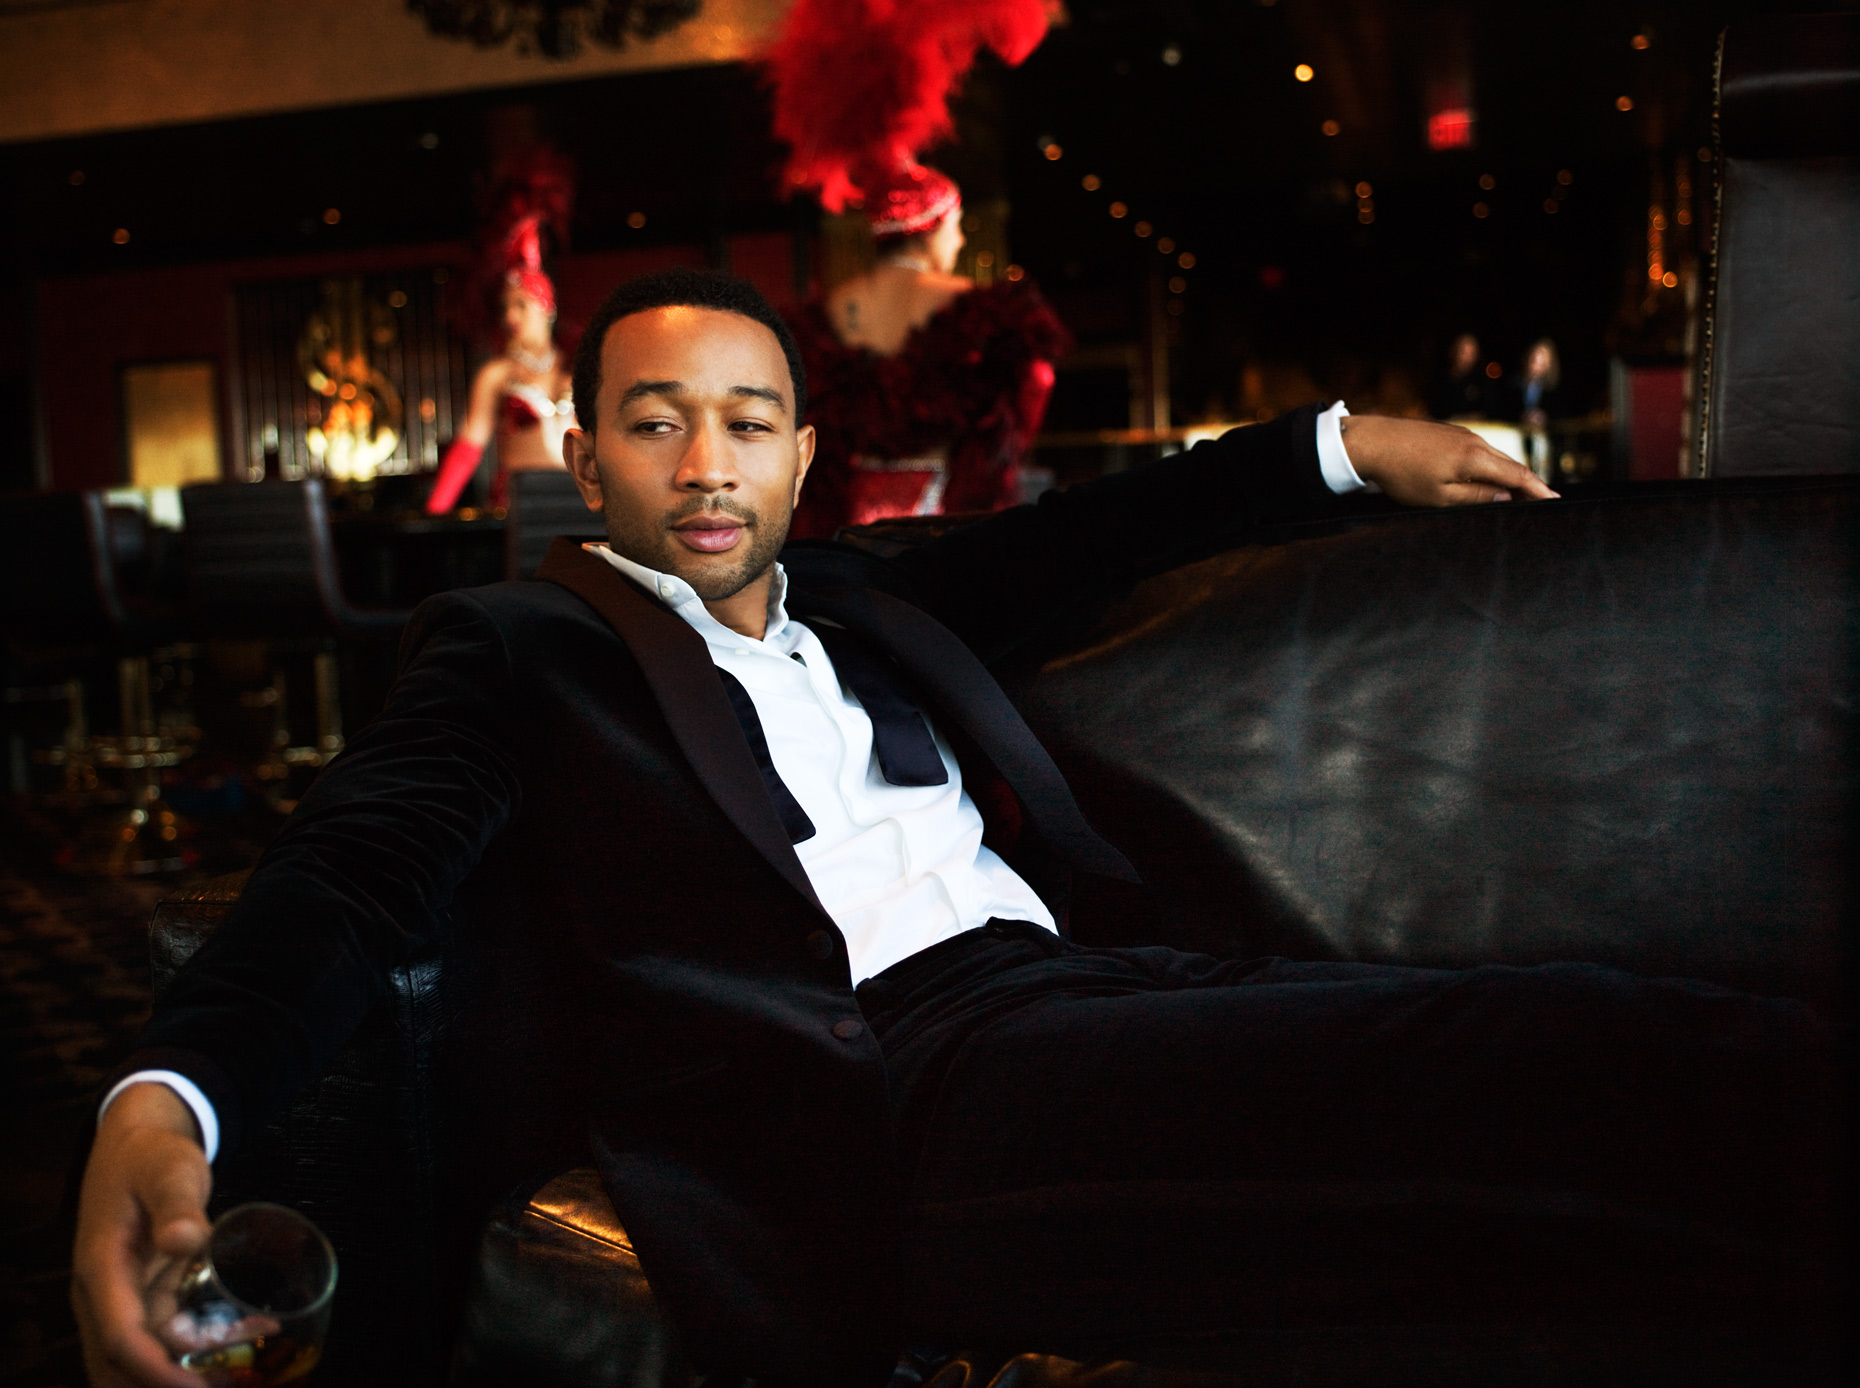 01_JohnLegend_125.jpg